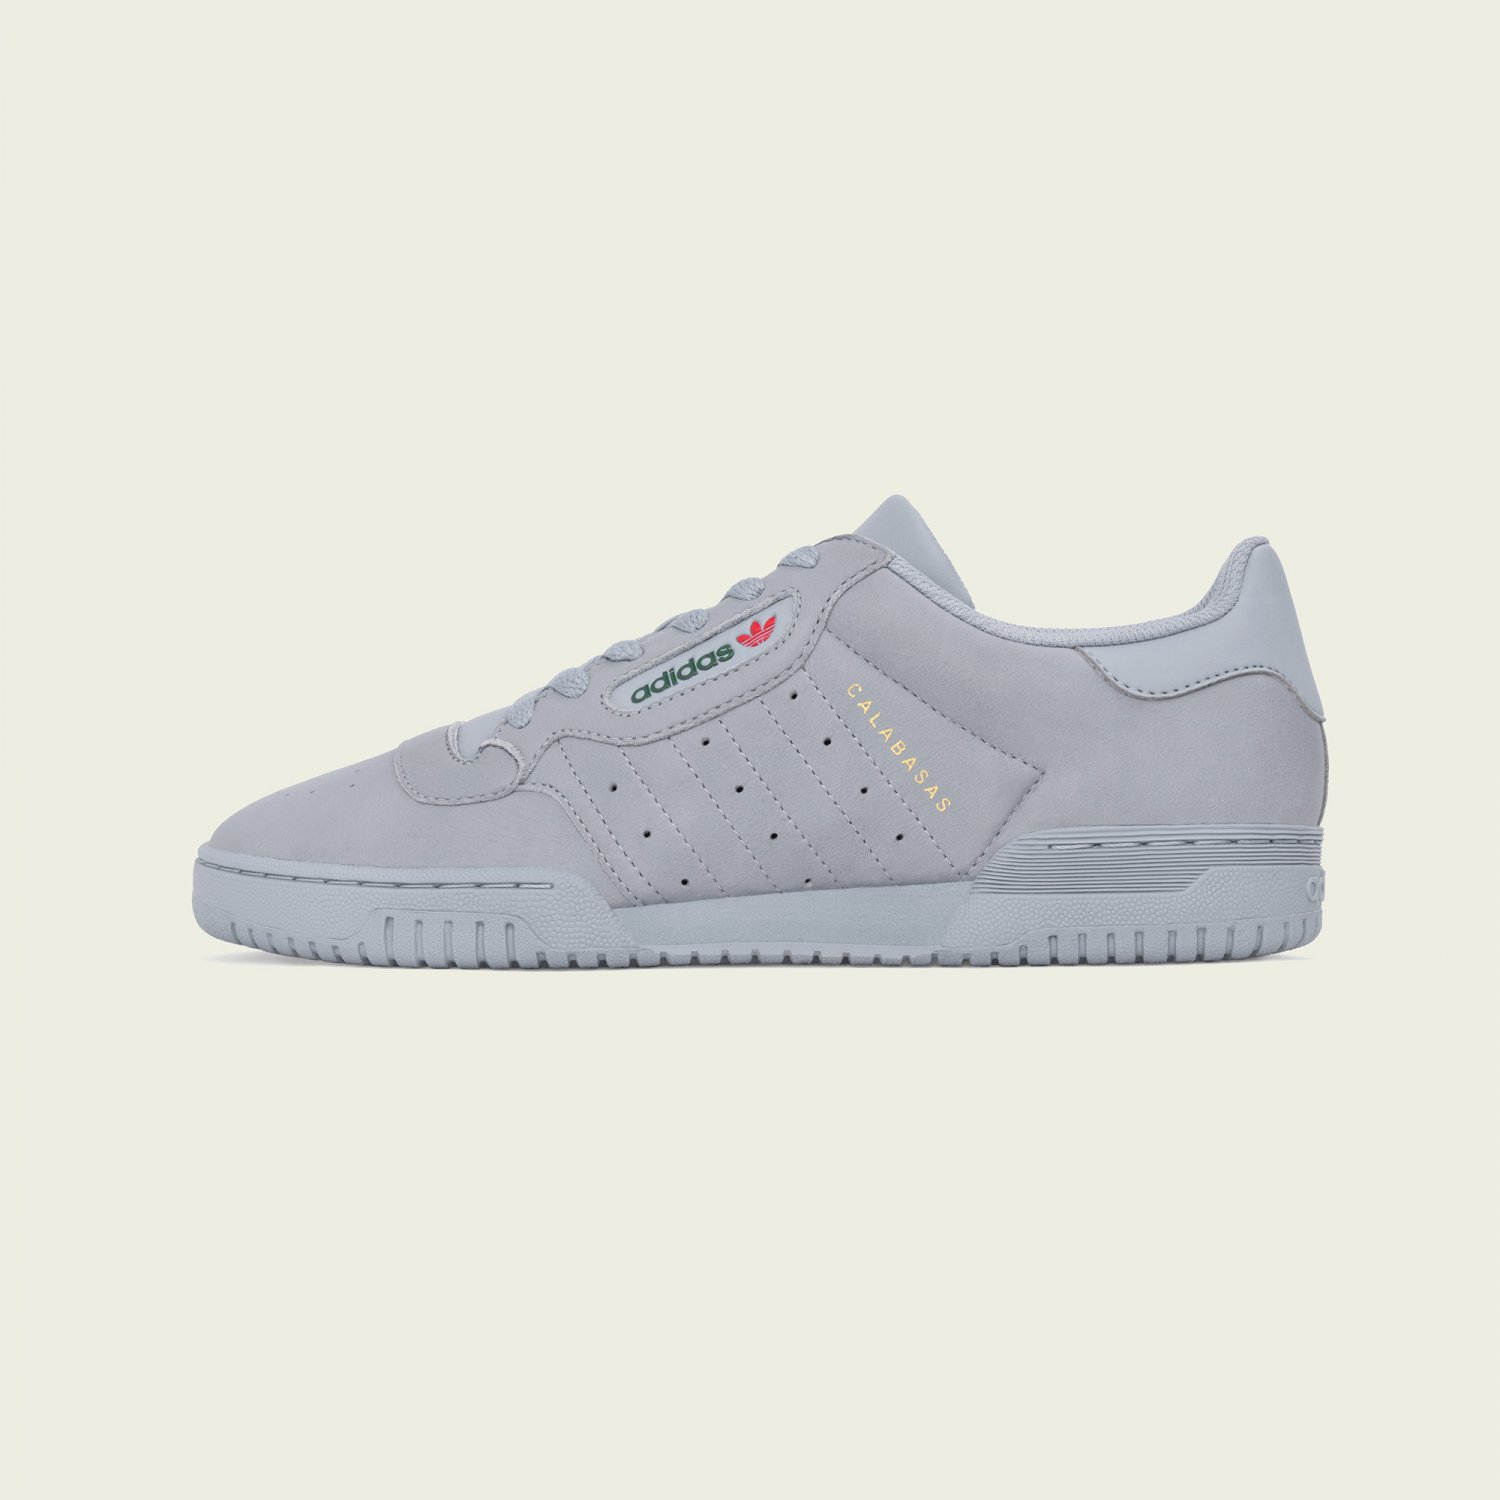 Yeezy Powerphase Calabasas Grey [2]